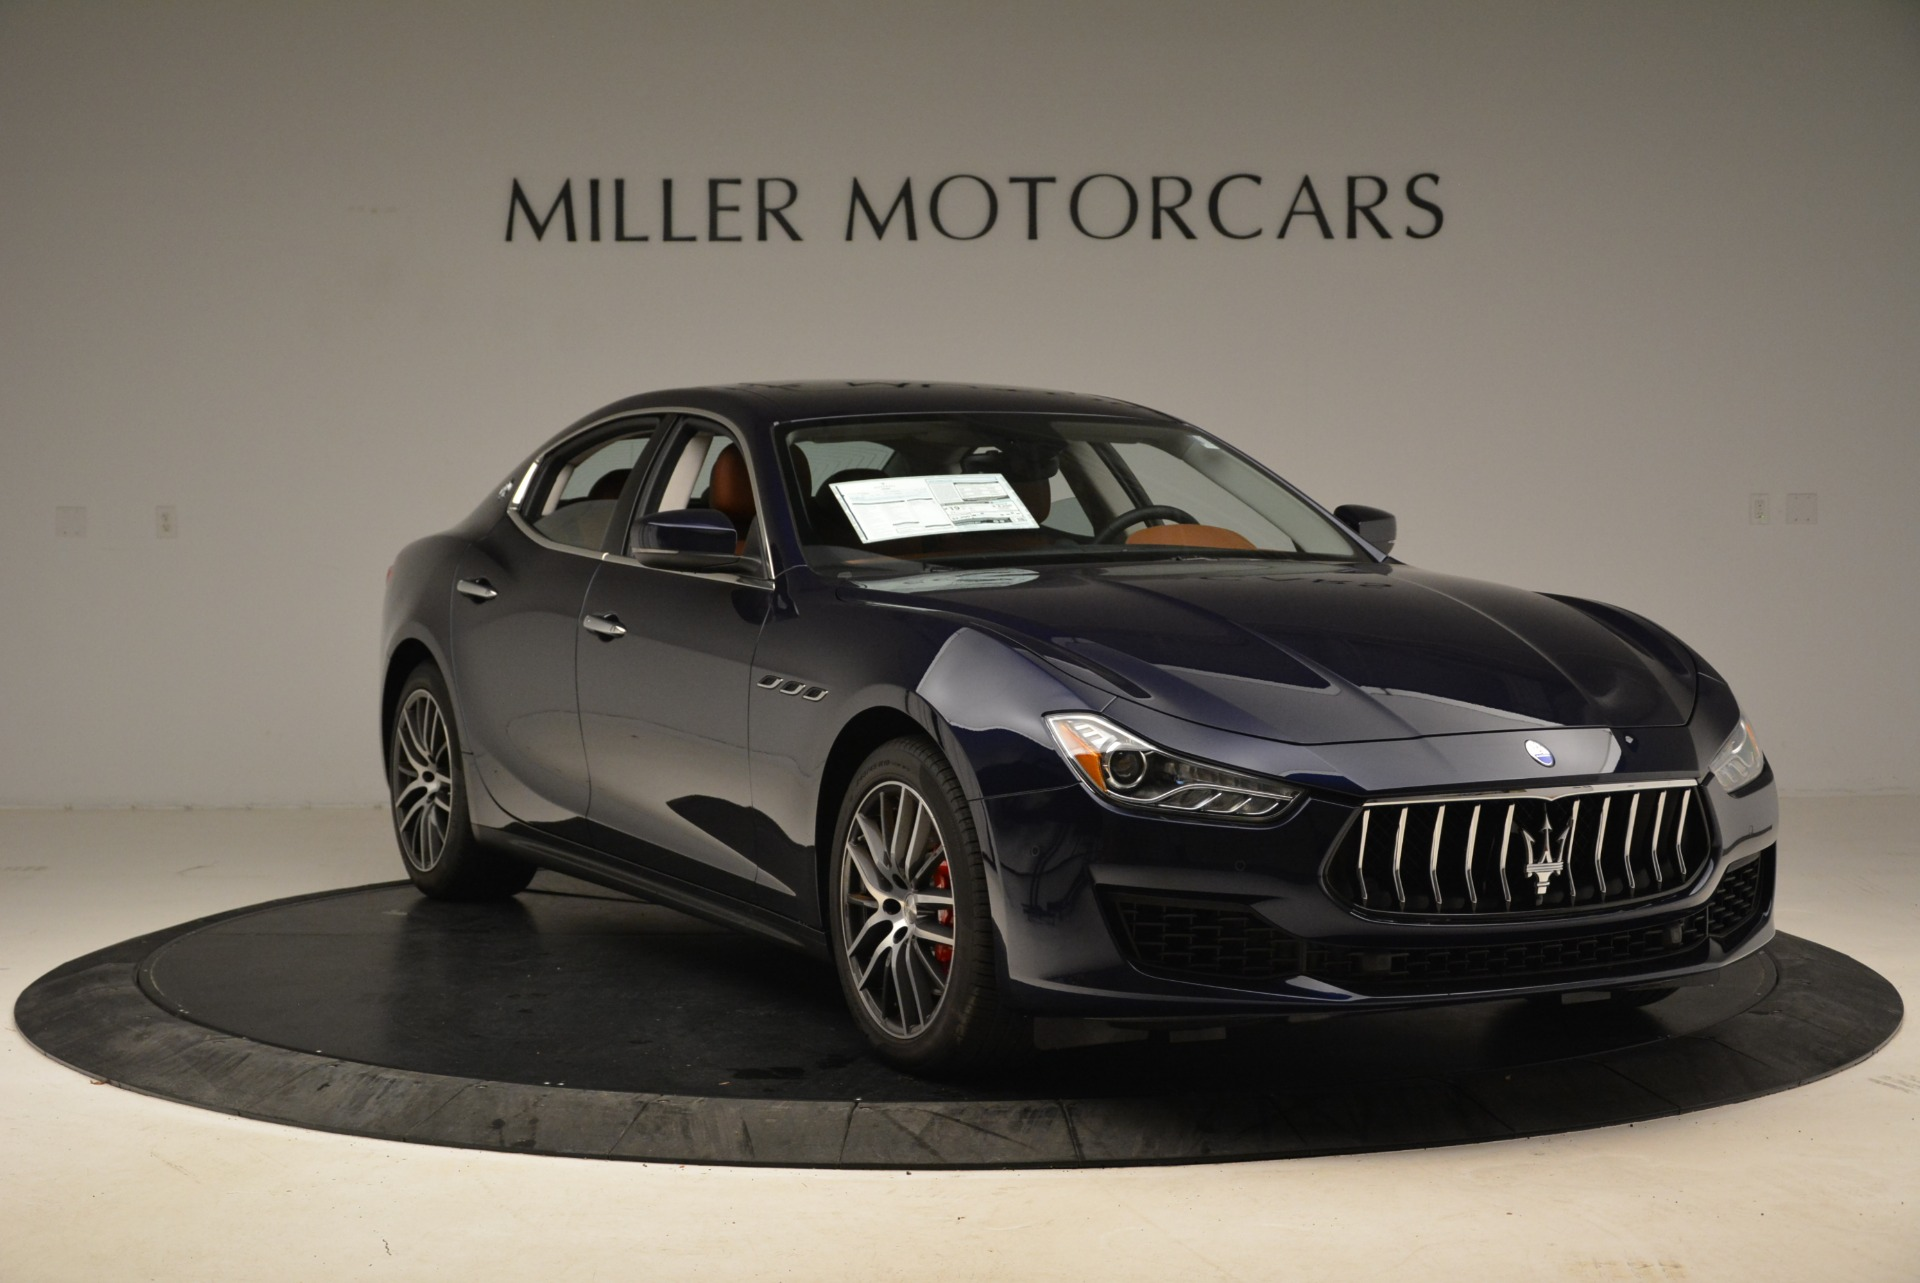 New 2019 Maserati Ghibli S Q4 For Sale In Westport, CT 3018_p11